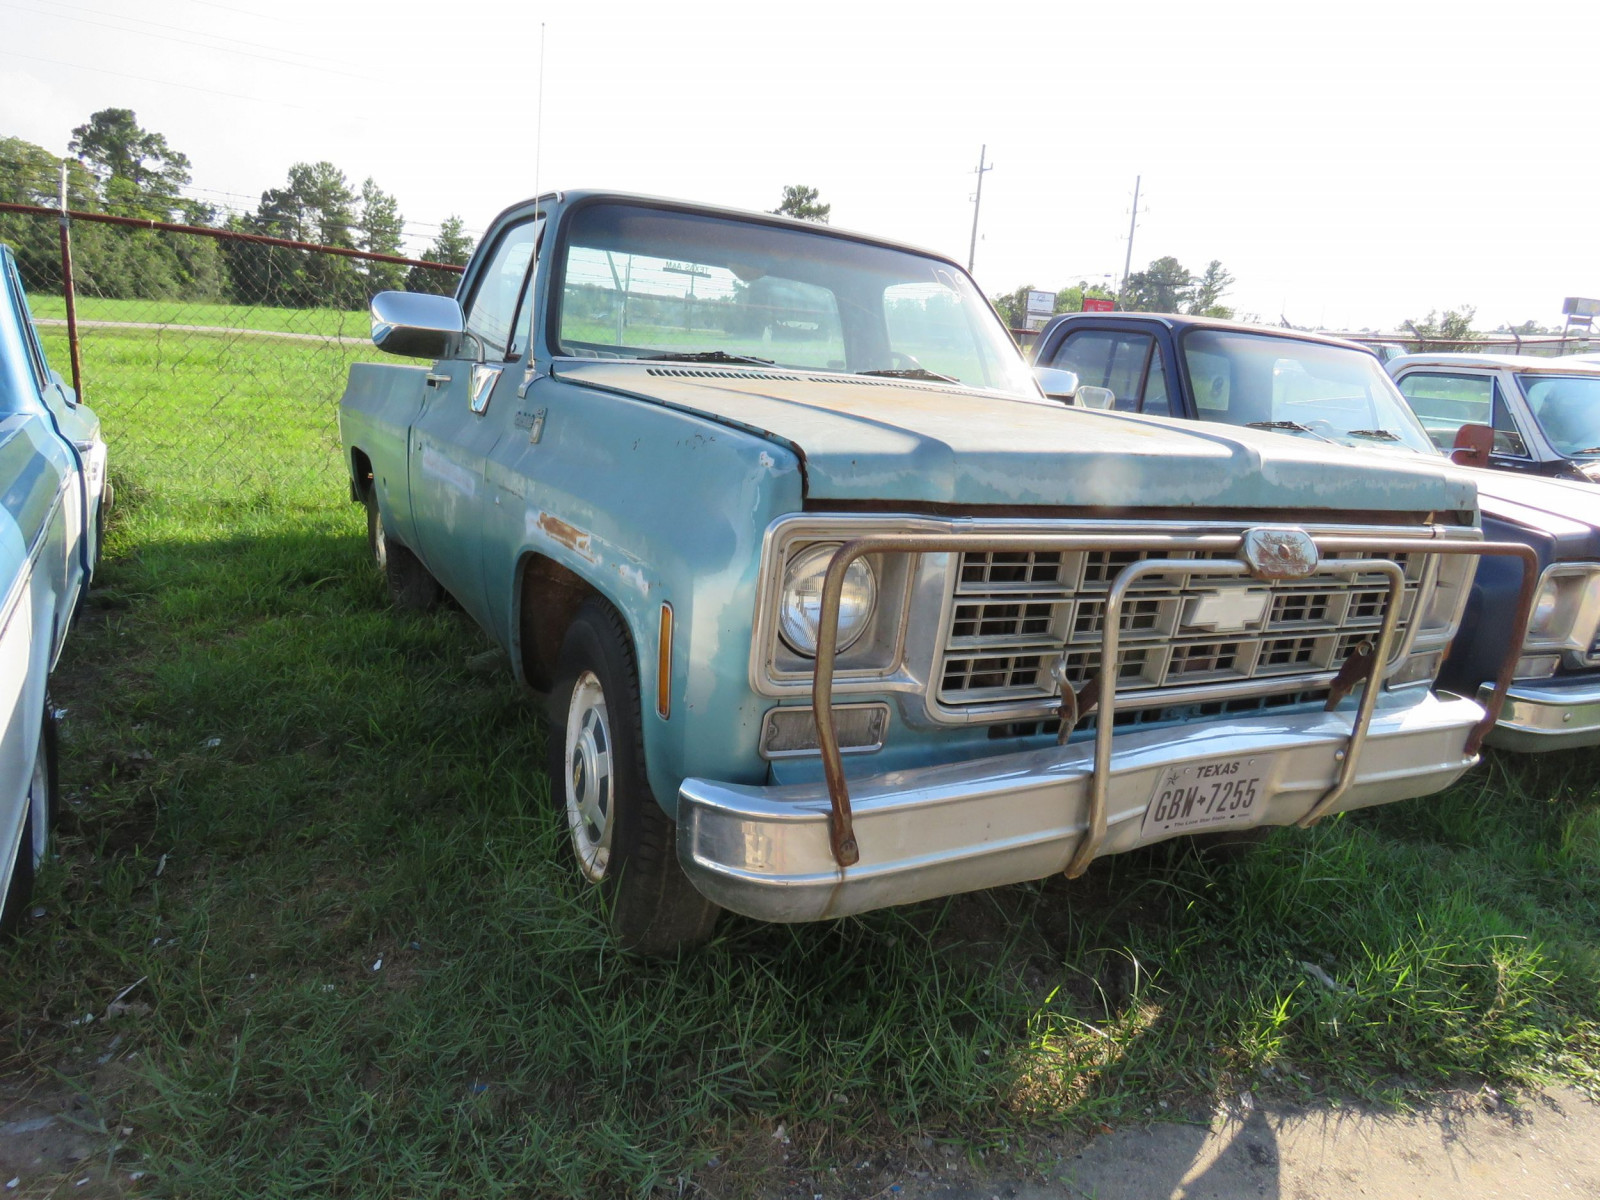 1978 Chevrolet C20 Scottsdale Pickup - Image 2